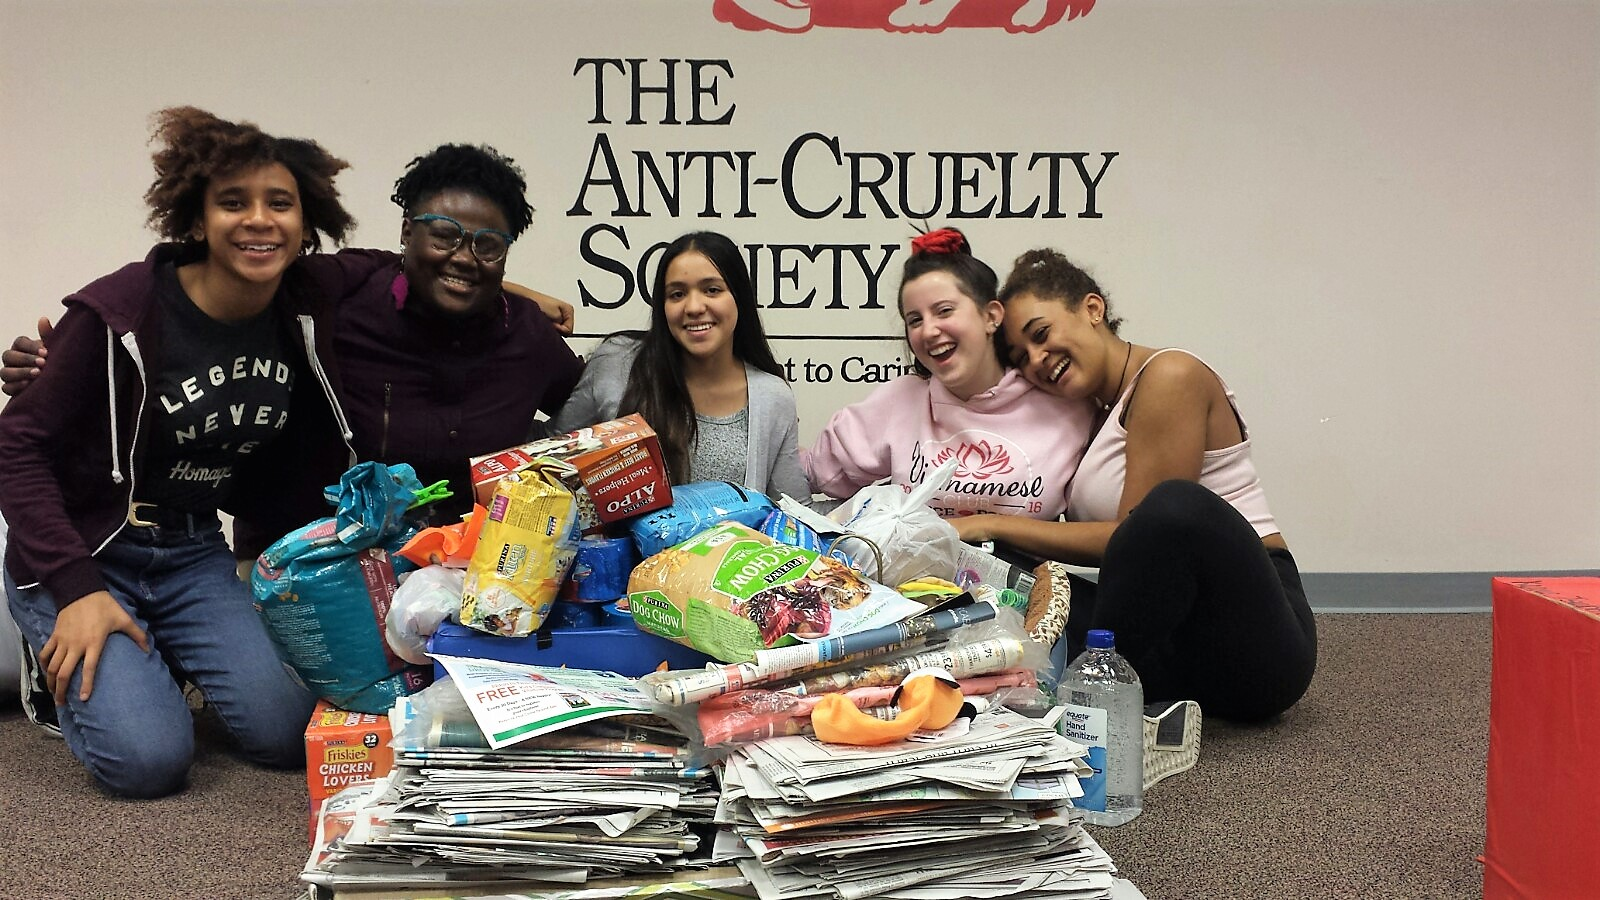 Group of students around donation of newspapers and pet food